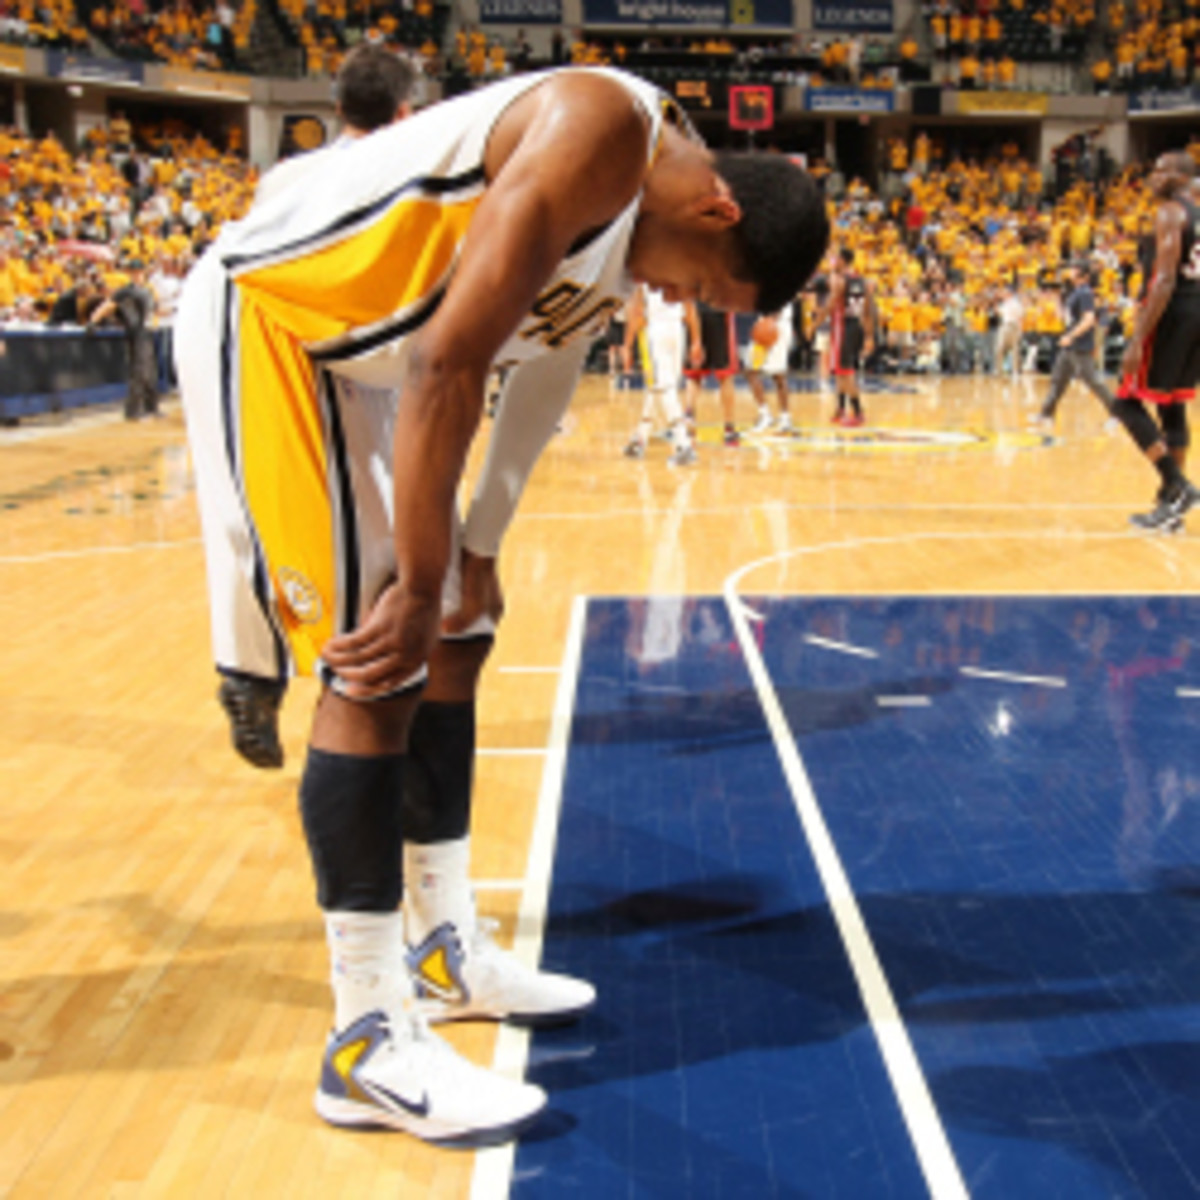 Danny Granger, who has missed all but five games this season with knee problems, may return for the Pacers on Wednesday. (Nathaniel S. Butler/Getty Images)